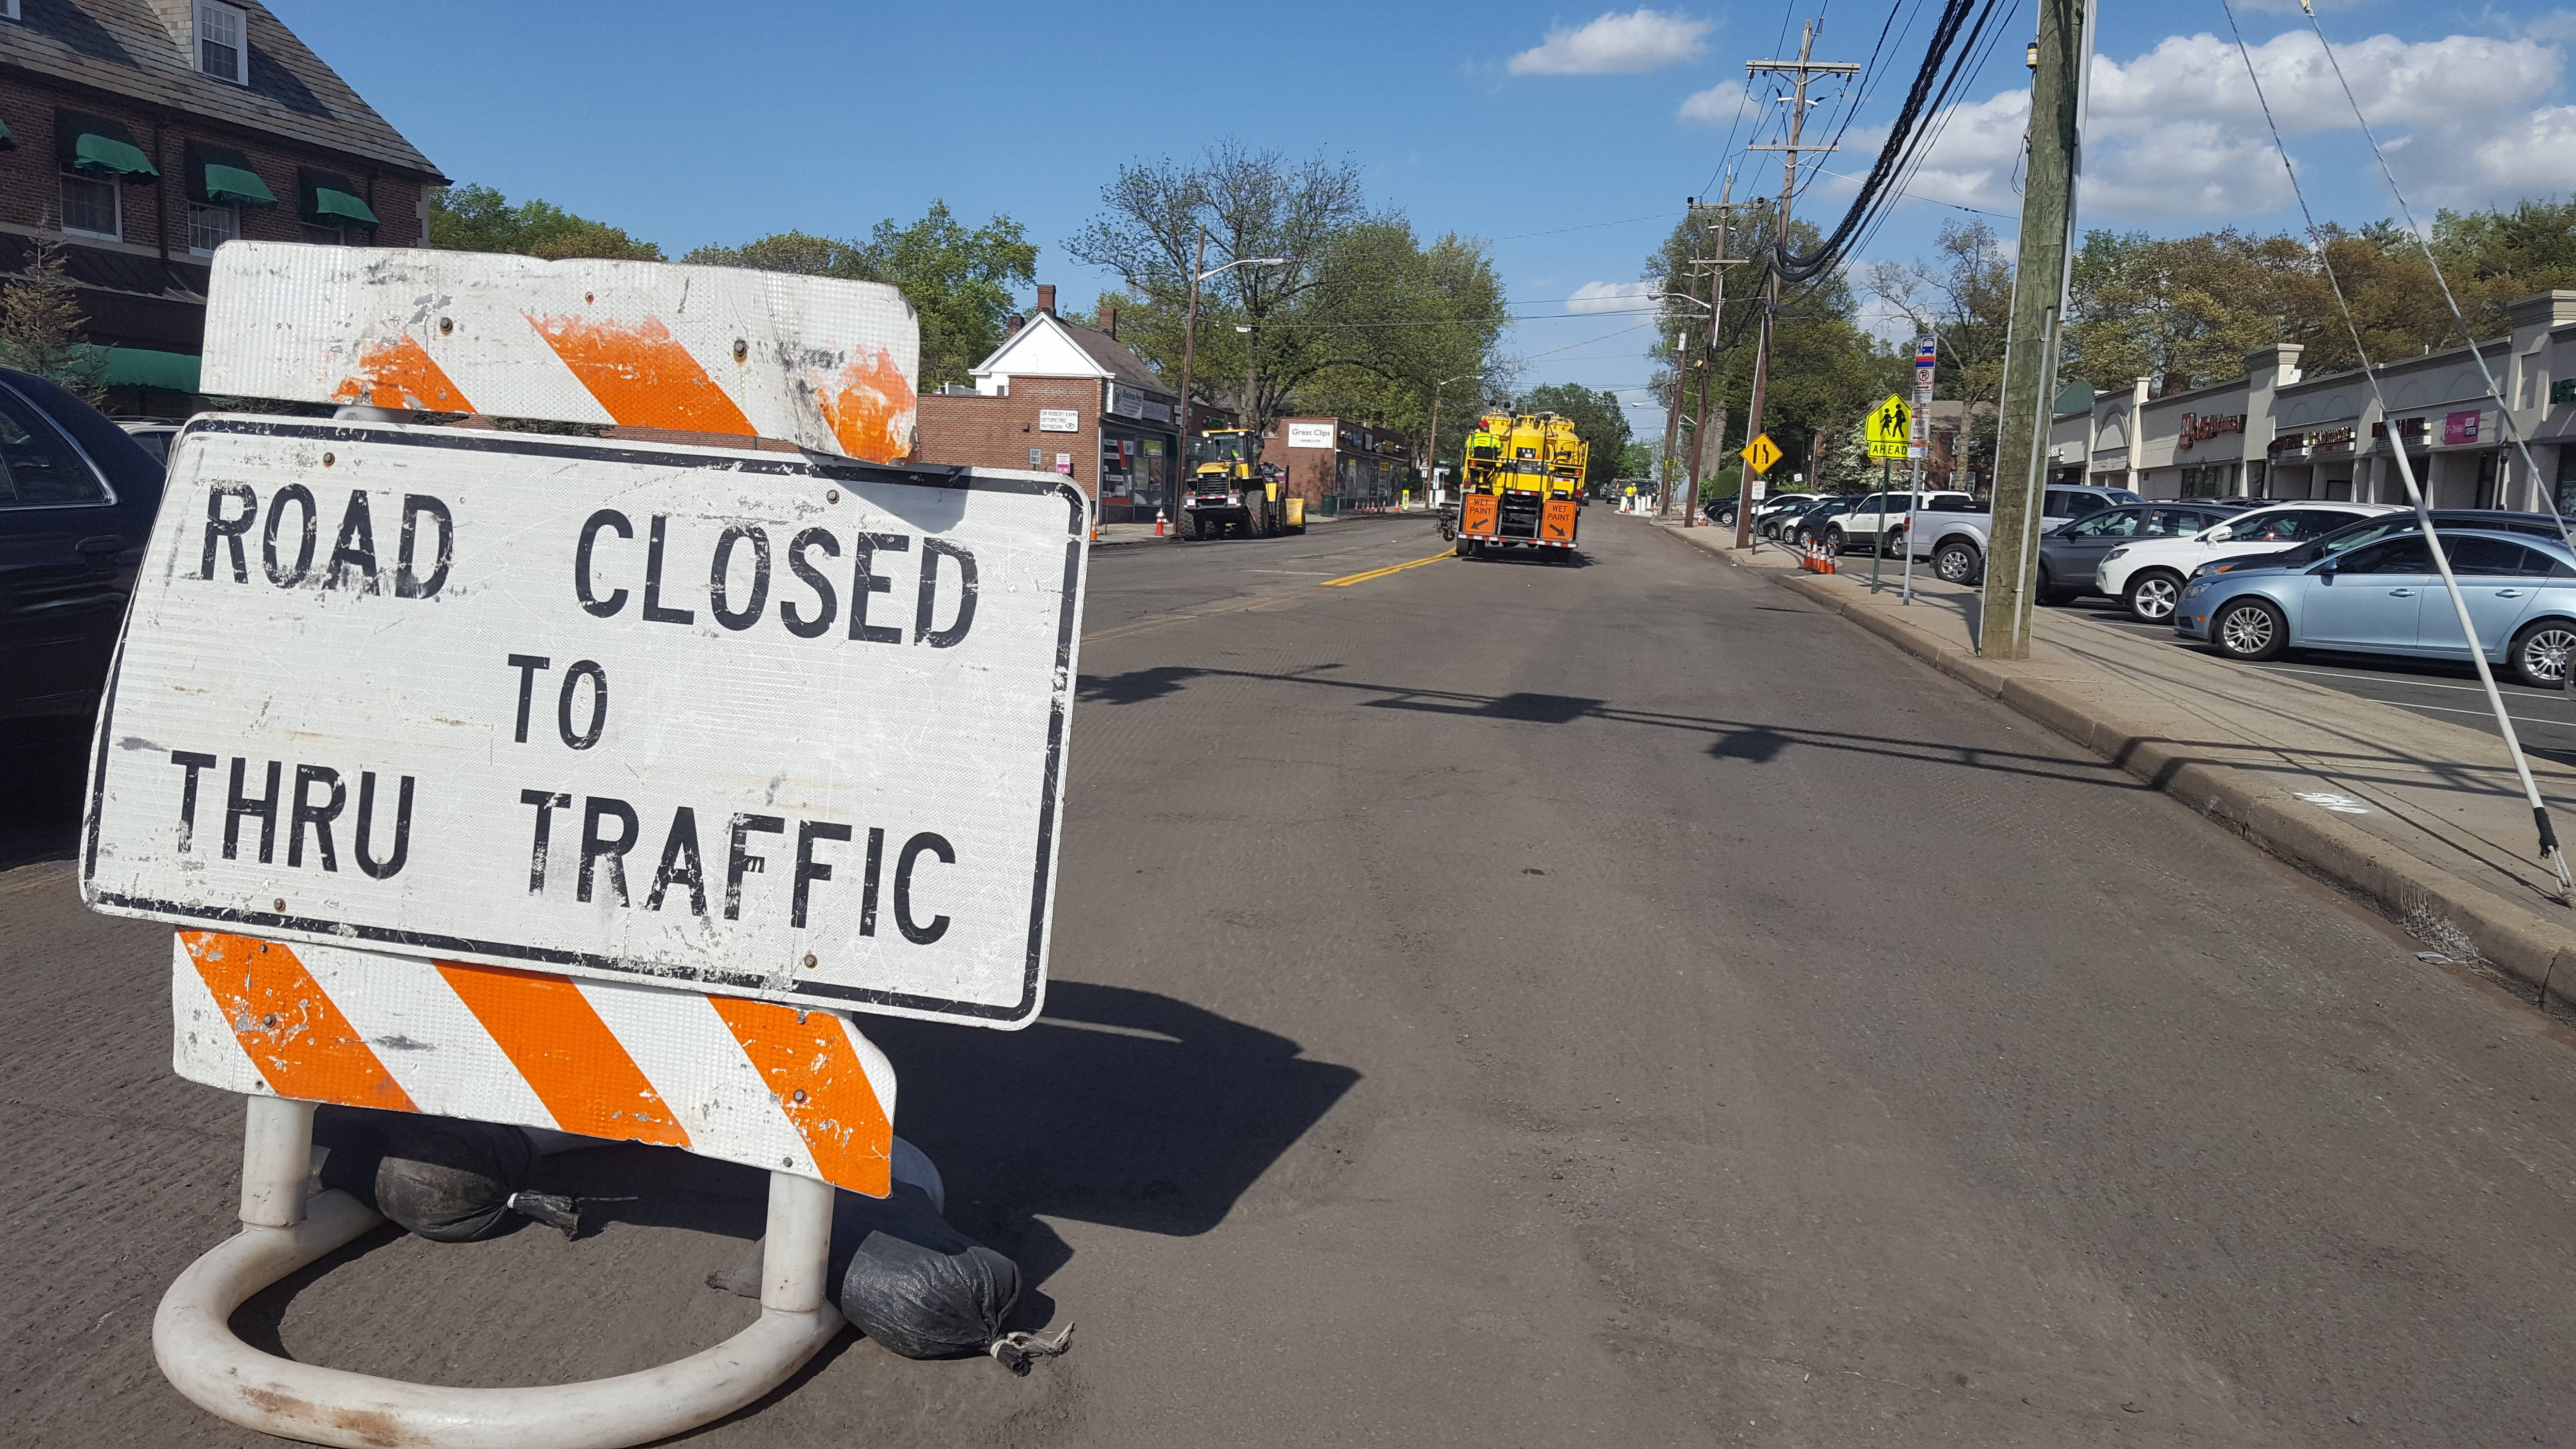 Elden Bolton >> Fair Lawn Road Paving to Begin Tuesday, Oct. 24: Check List for Road Closures - News - TAPinto